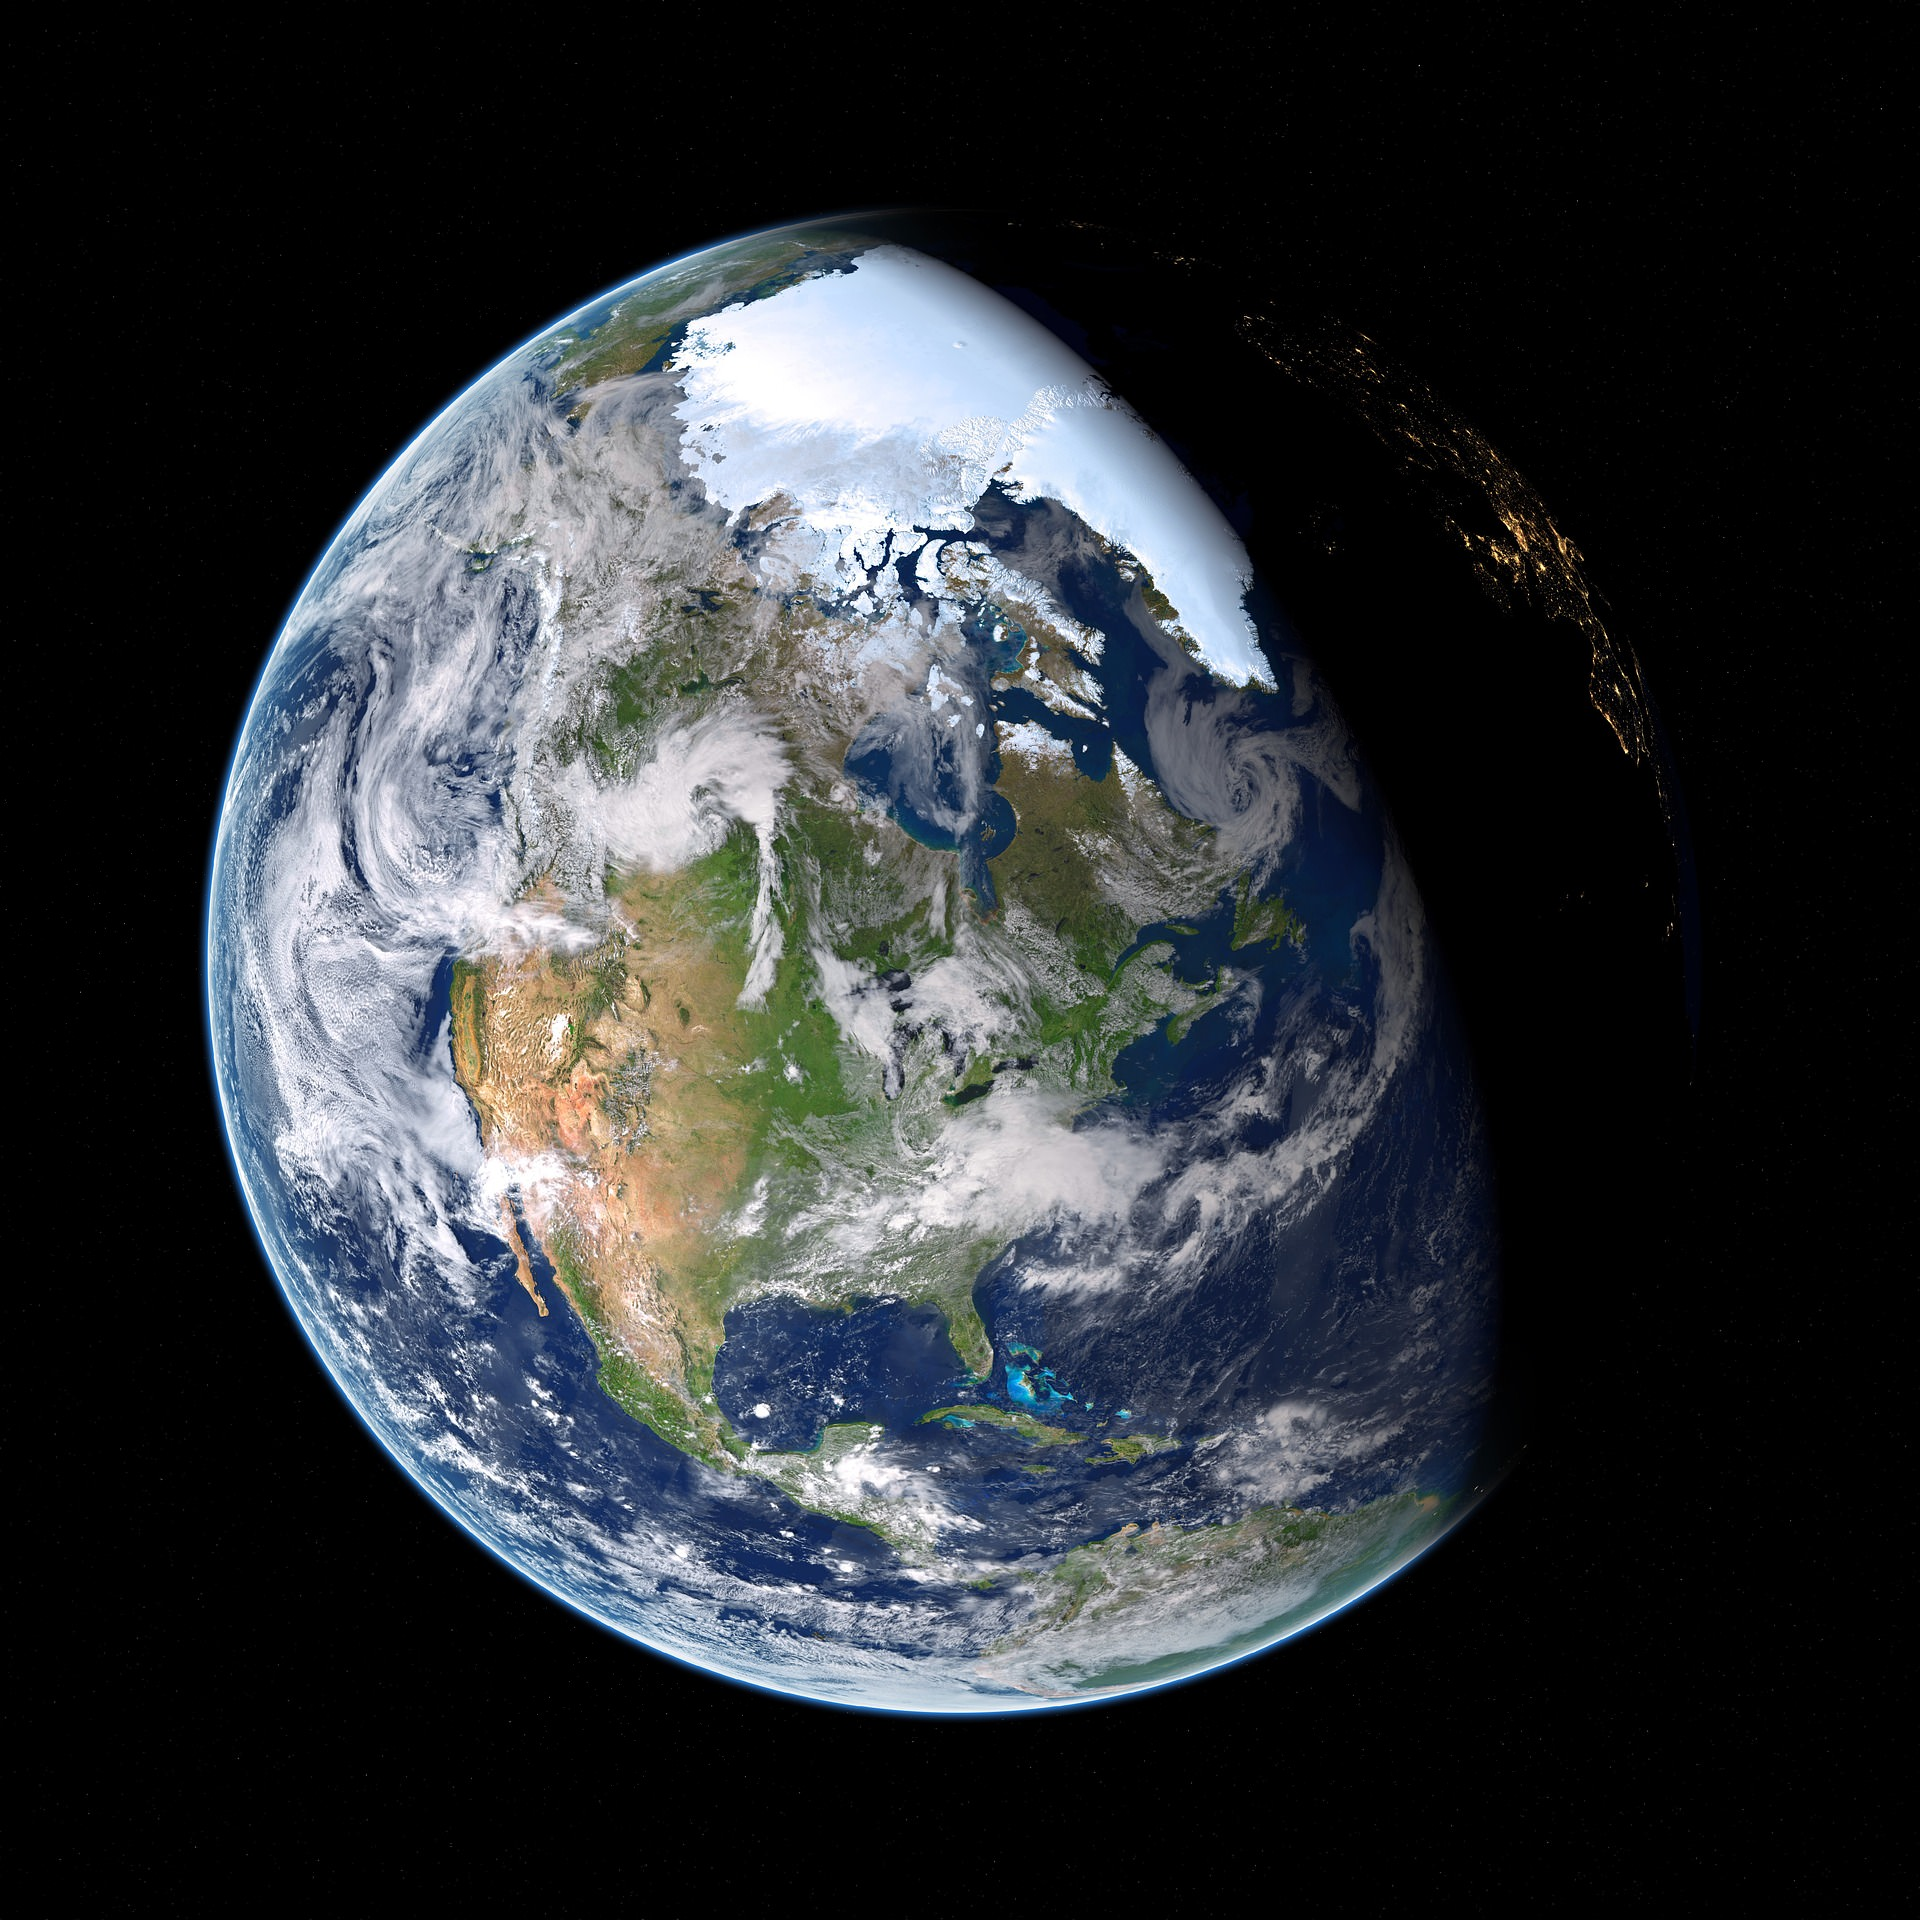 An image of planet earth.